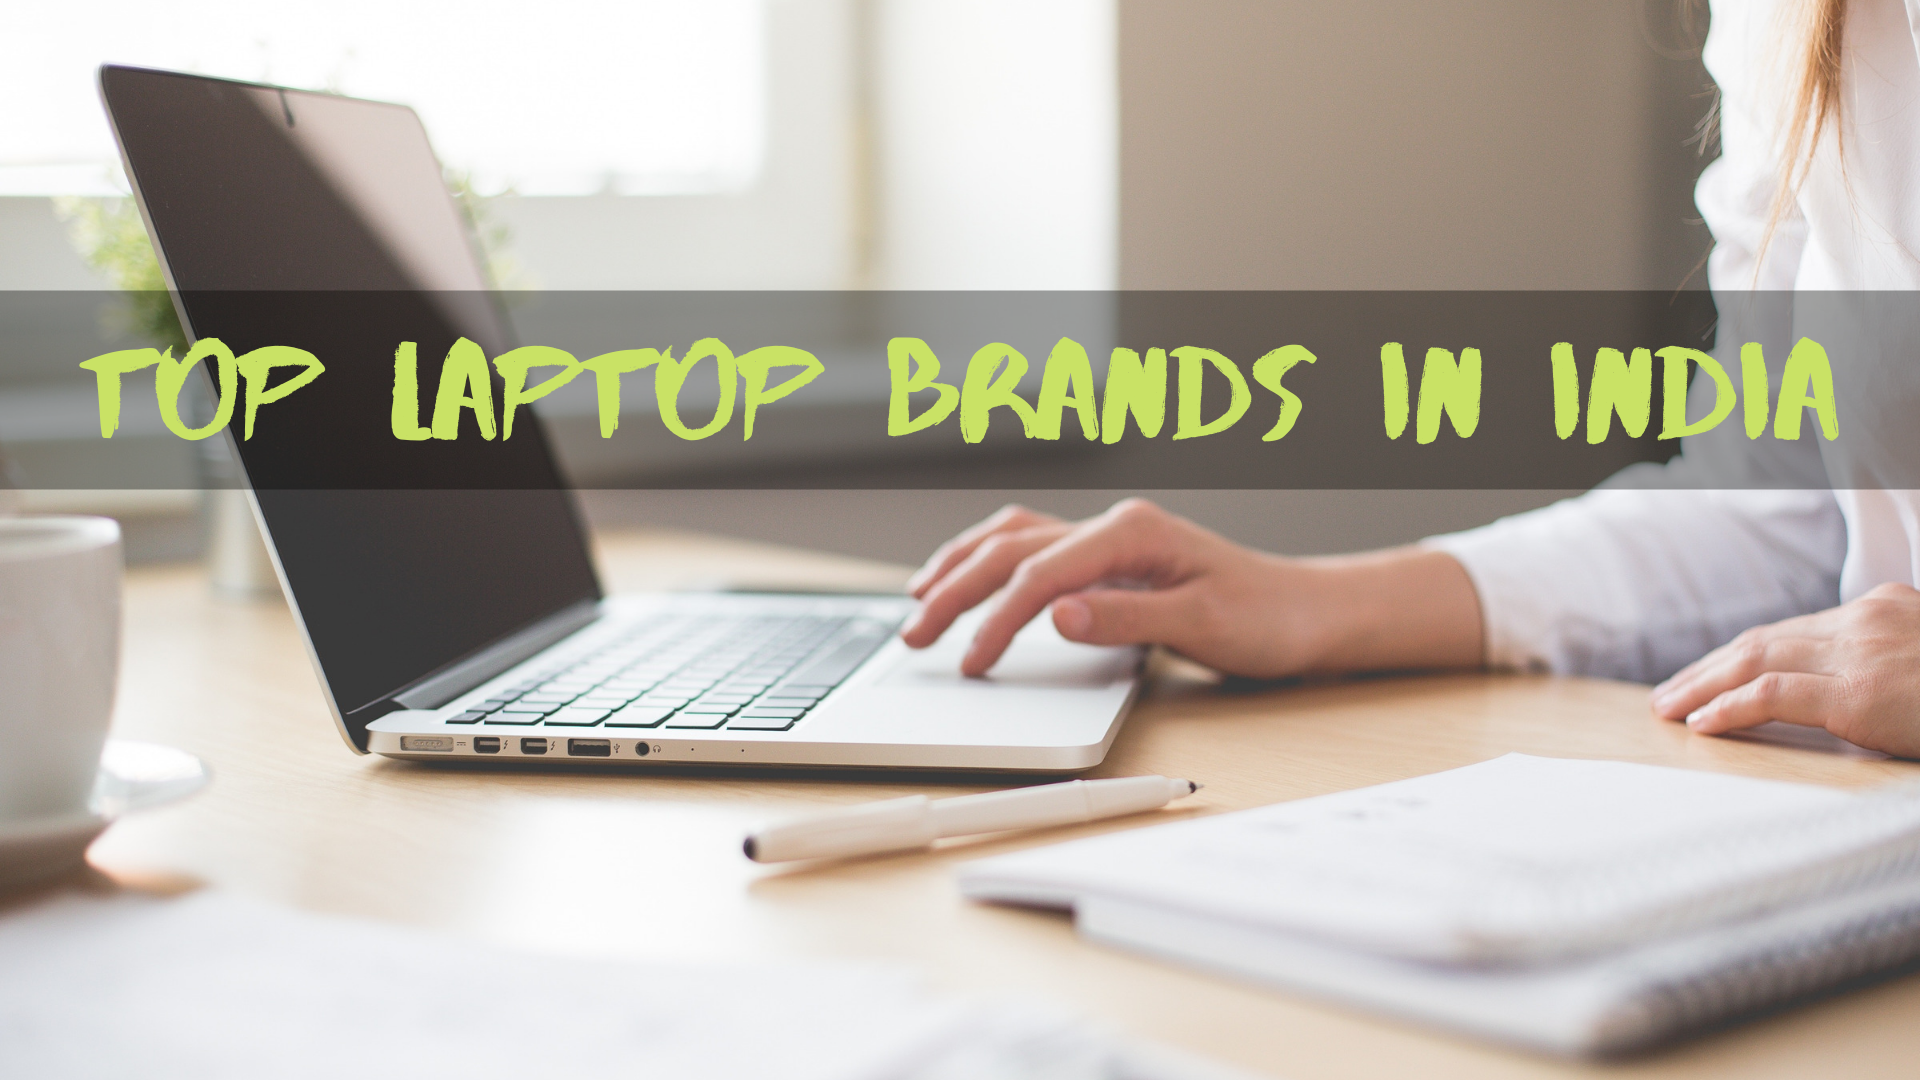 Top laptop Brands In India